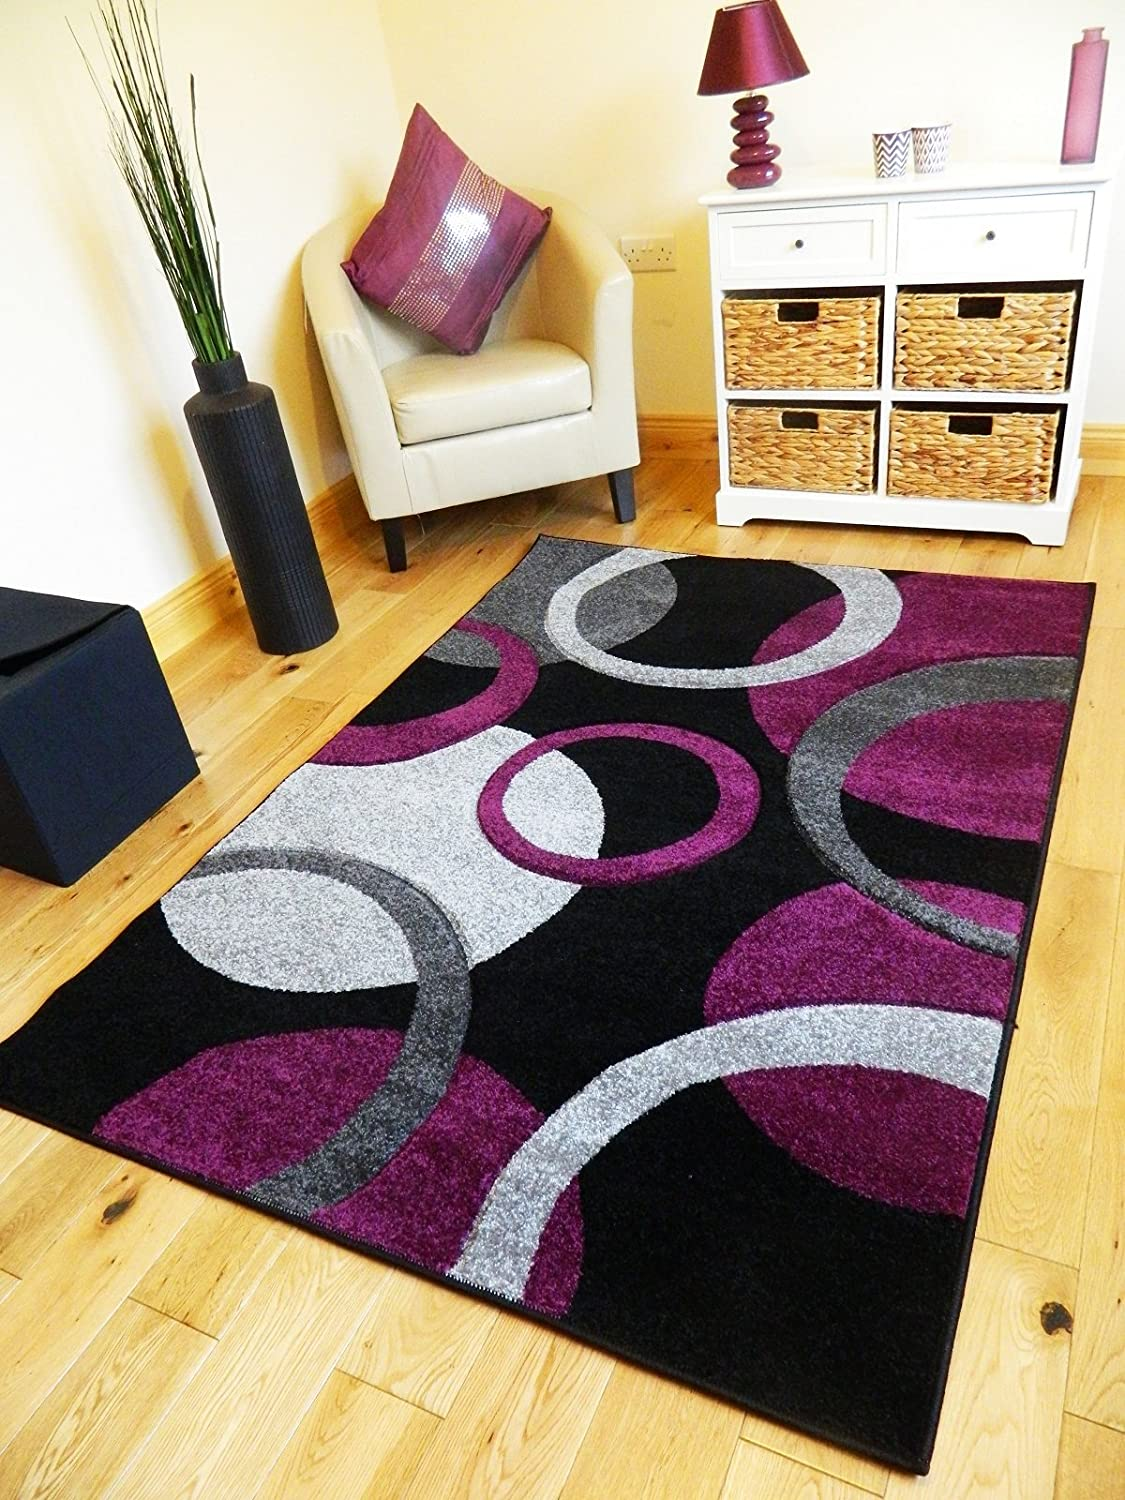 *5 Sizes*NEW SMALL MEDIUM XX LARGE MODERN PURPLE BLACK SILVER CARVED  QUALITY HALL RUNNER LIVING ROOM MAT CHEAP BEDROOM OFFICE SOFT RUG (200 X  290 CMS): ...